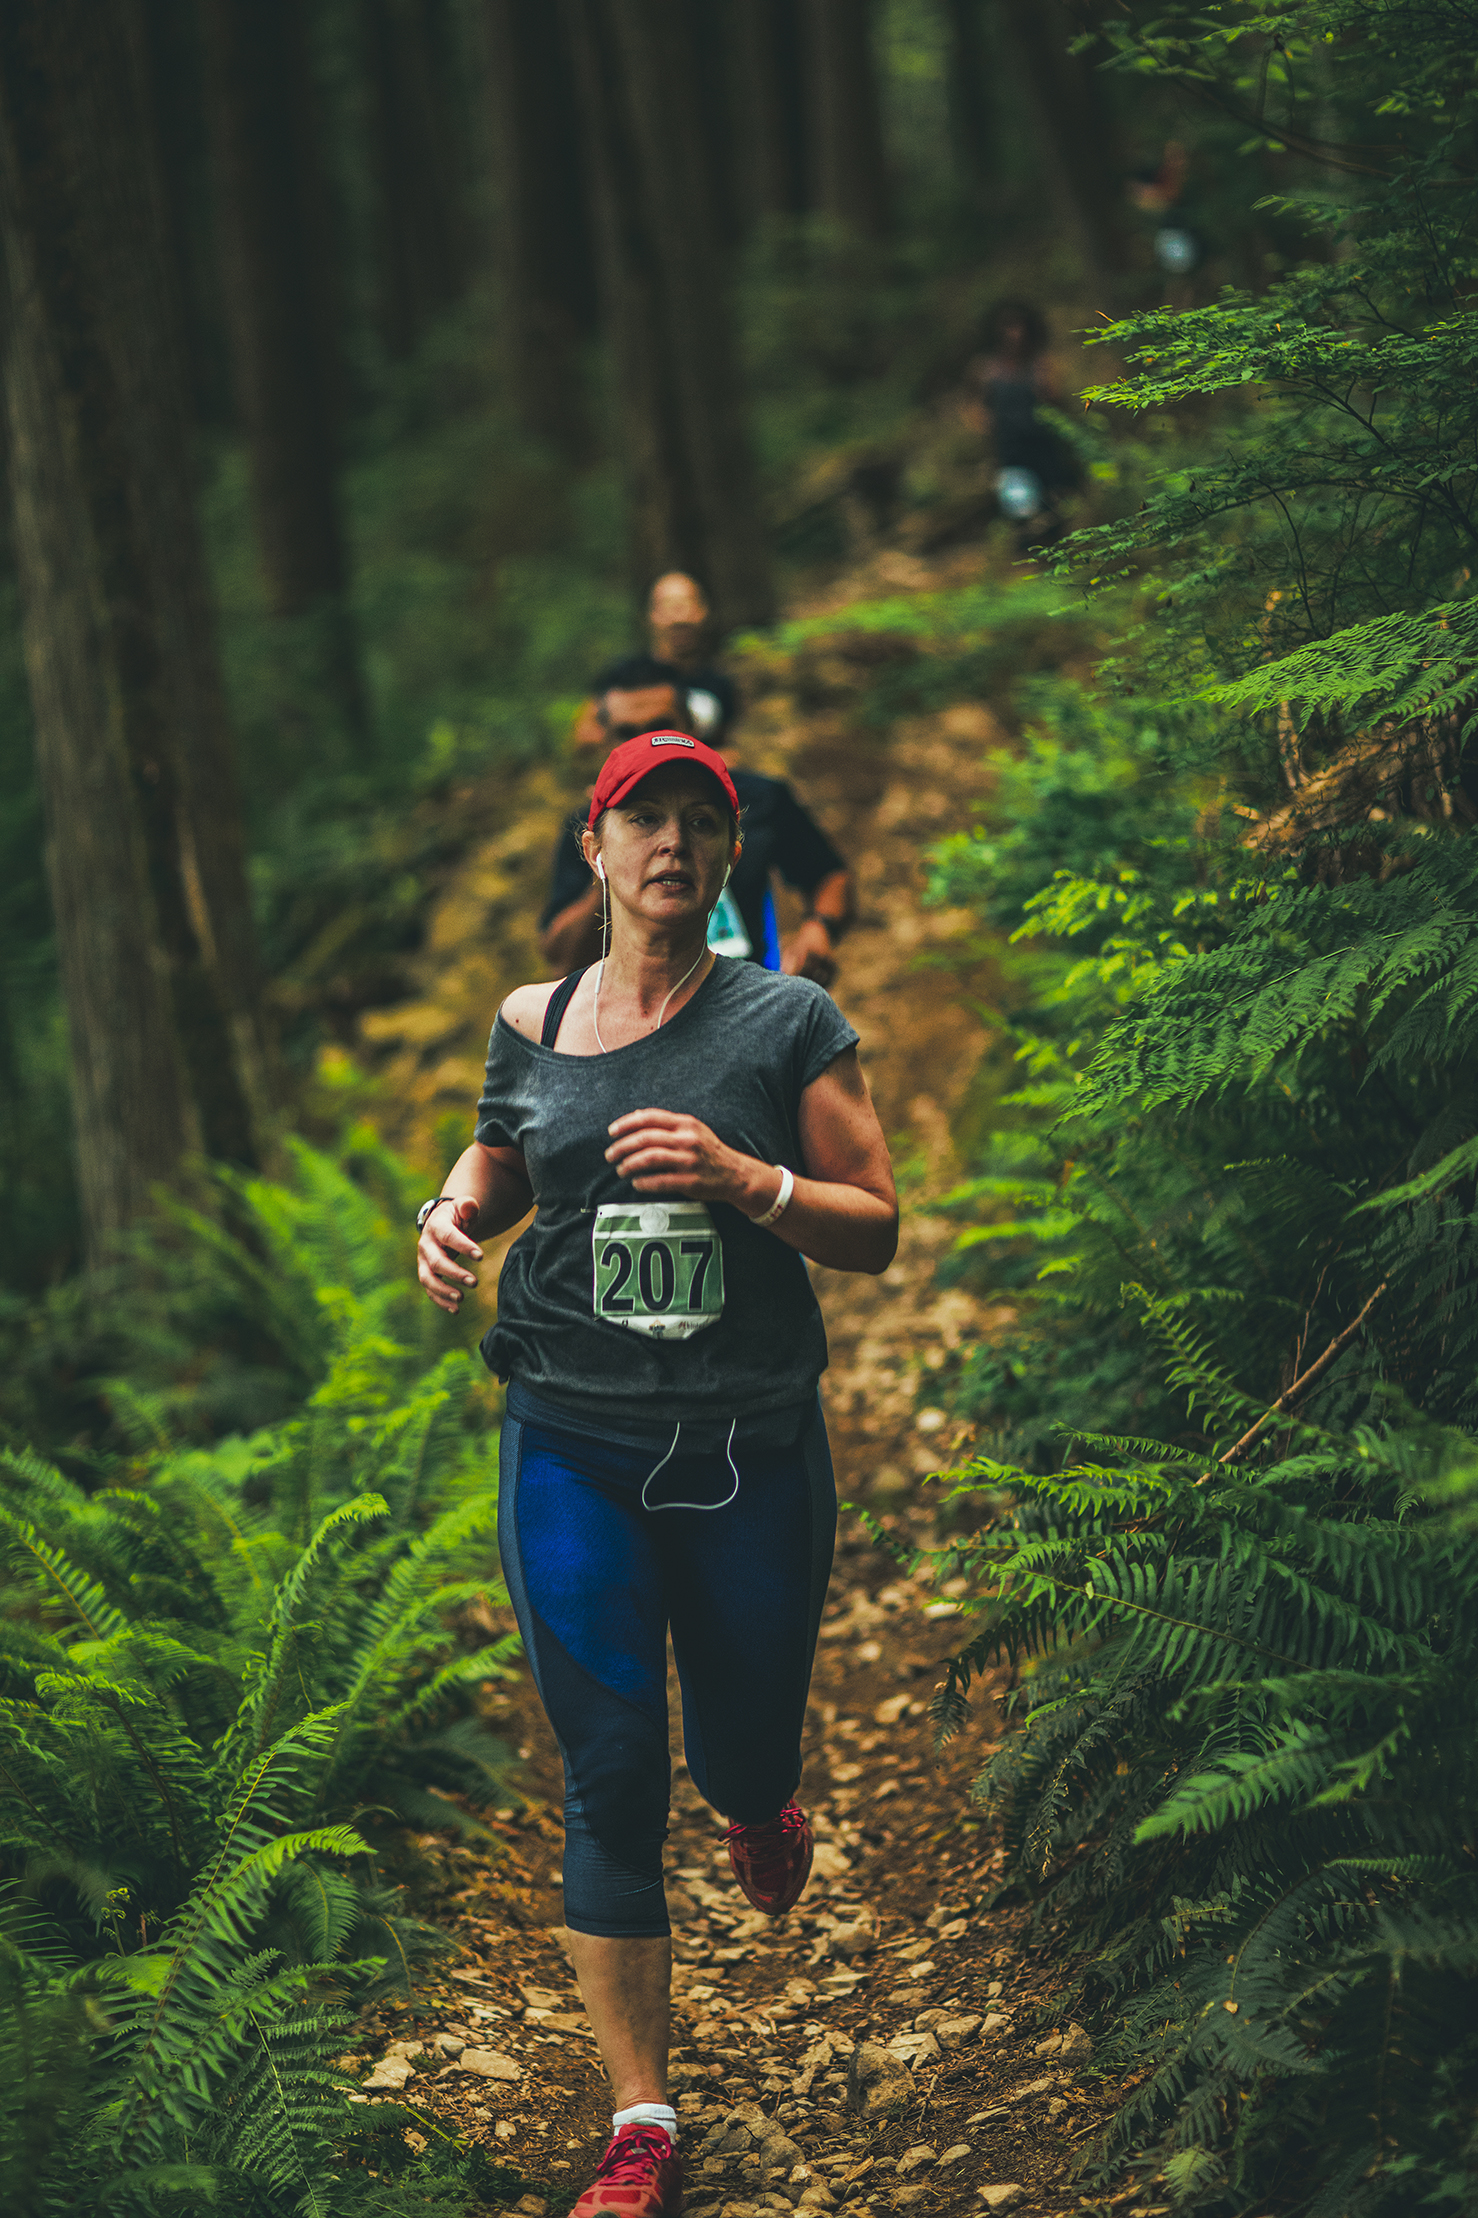 Fraser Valley Trail Races - Bear Mountain - IMG_2039 by Brice Ferre Studio - Vancouver Portrait Adventure and Athlete Photographer.jpg